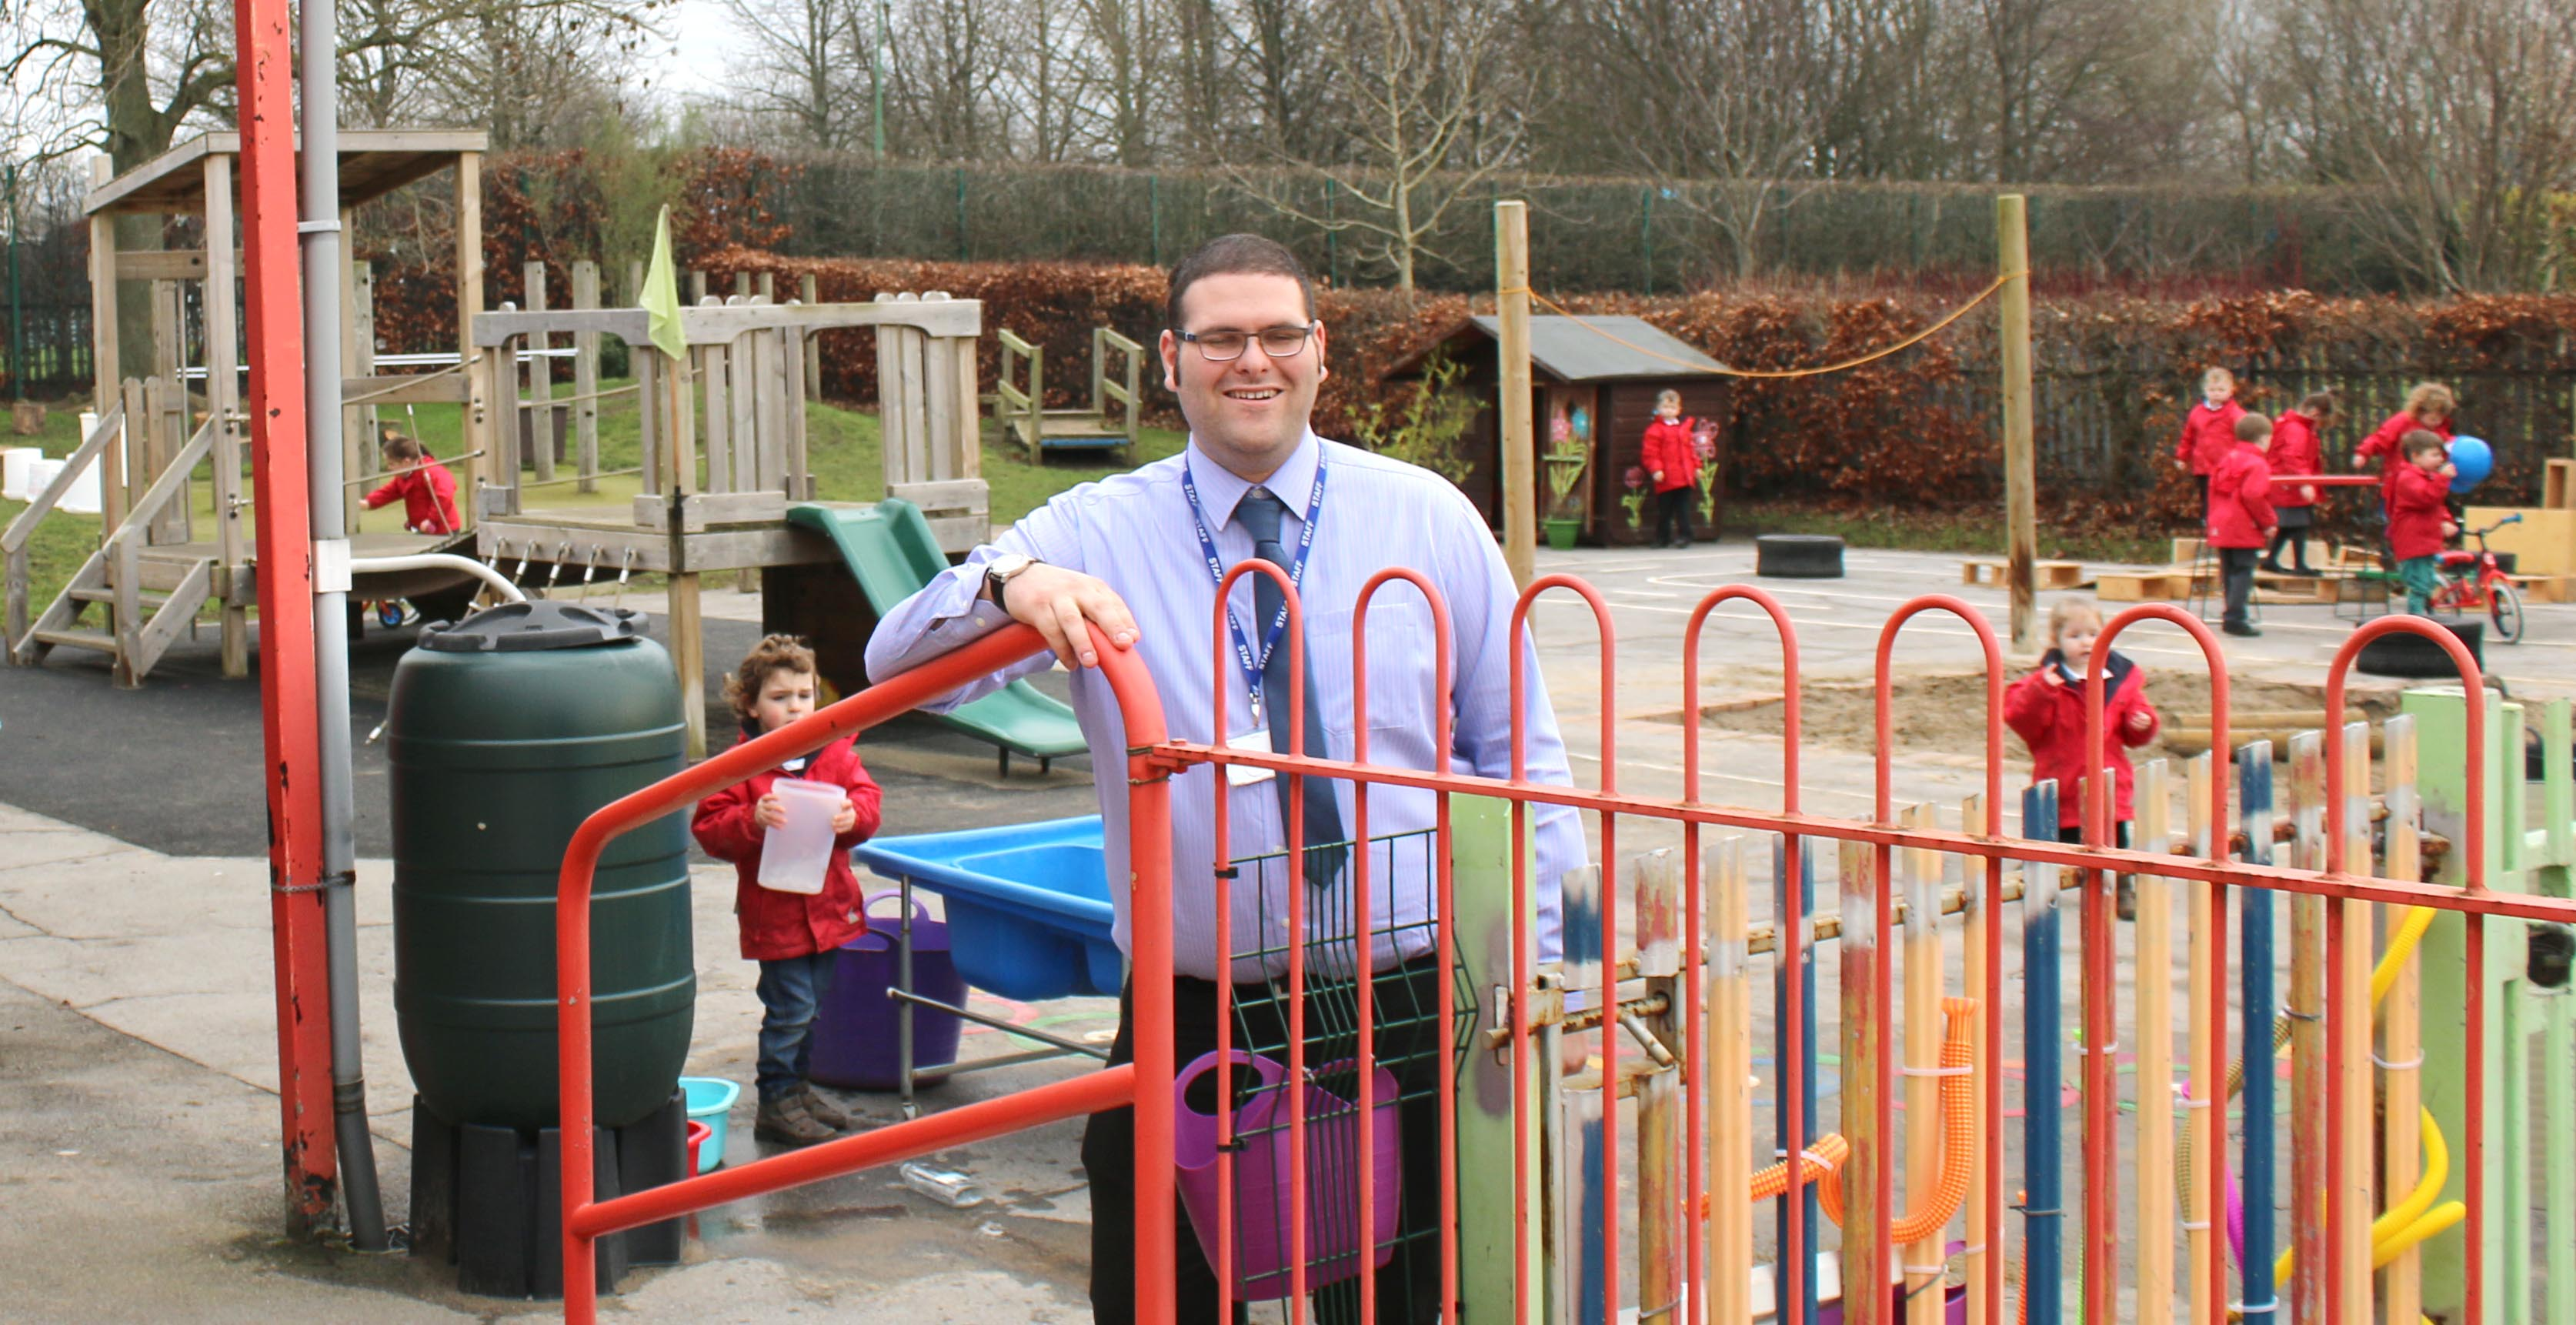 One of UK's Youngest Head Teachers at St. Joseph's